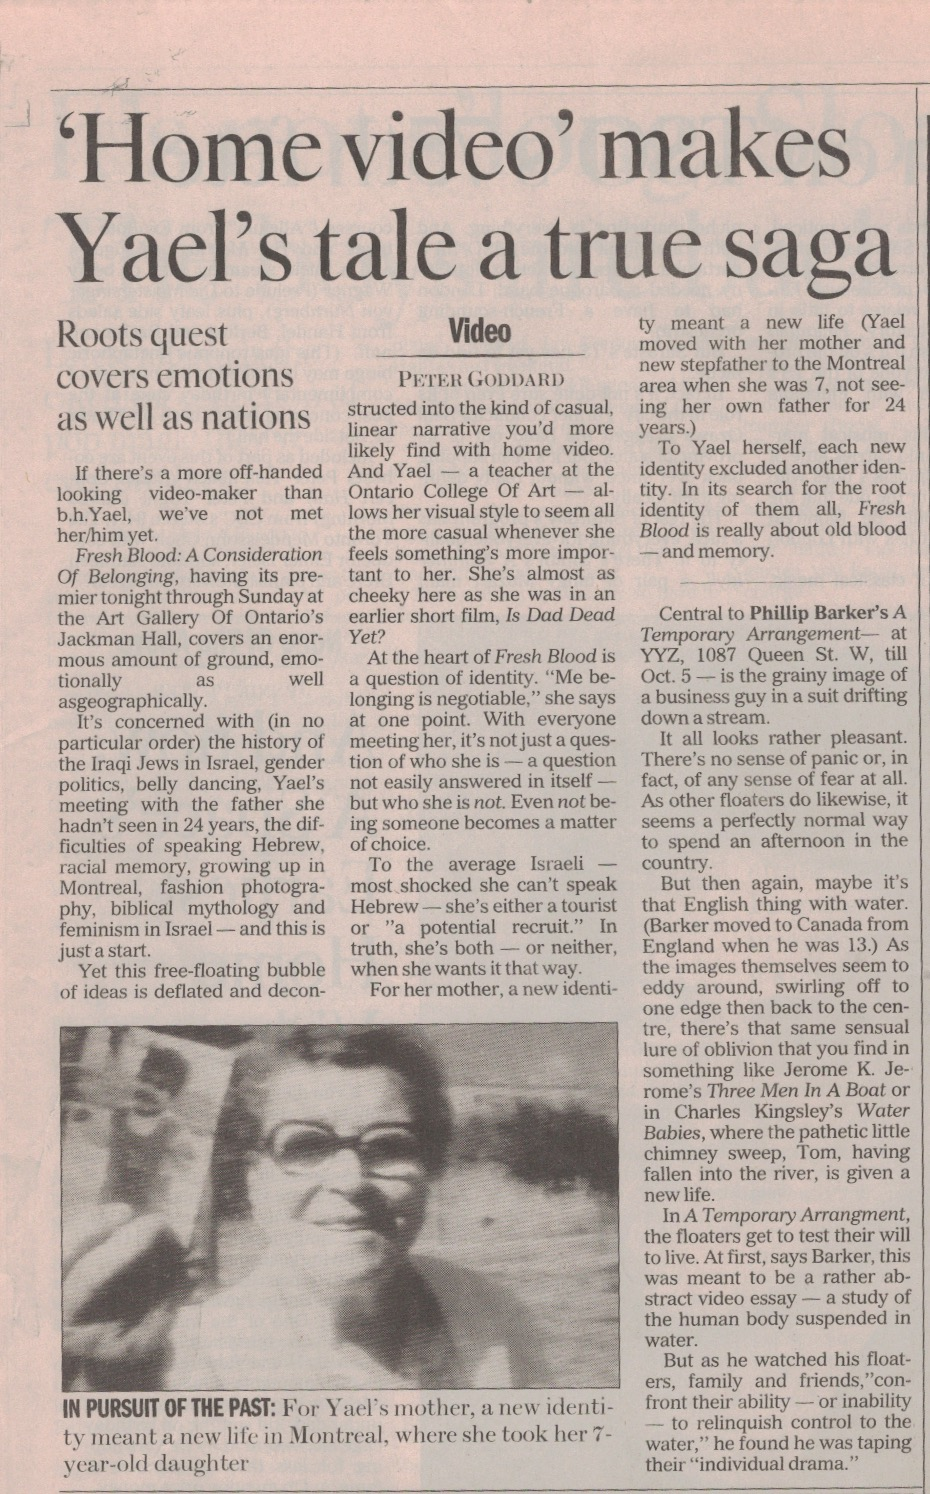 Home video makes Yael's tale a true saga: Roots quest covers emotions as well as nations . by Peter Goddard. The Toronto Star, Sept. 19, 1996.